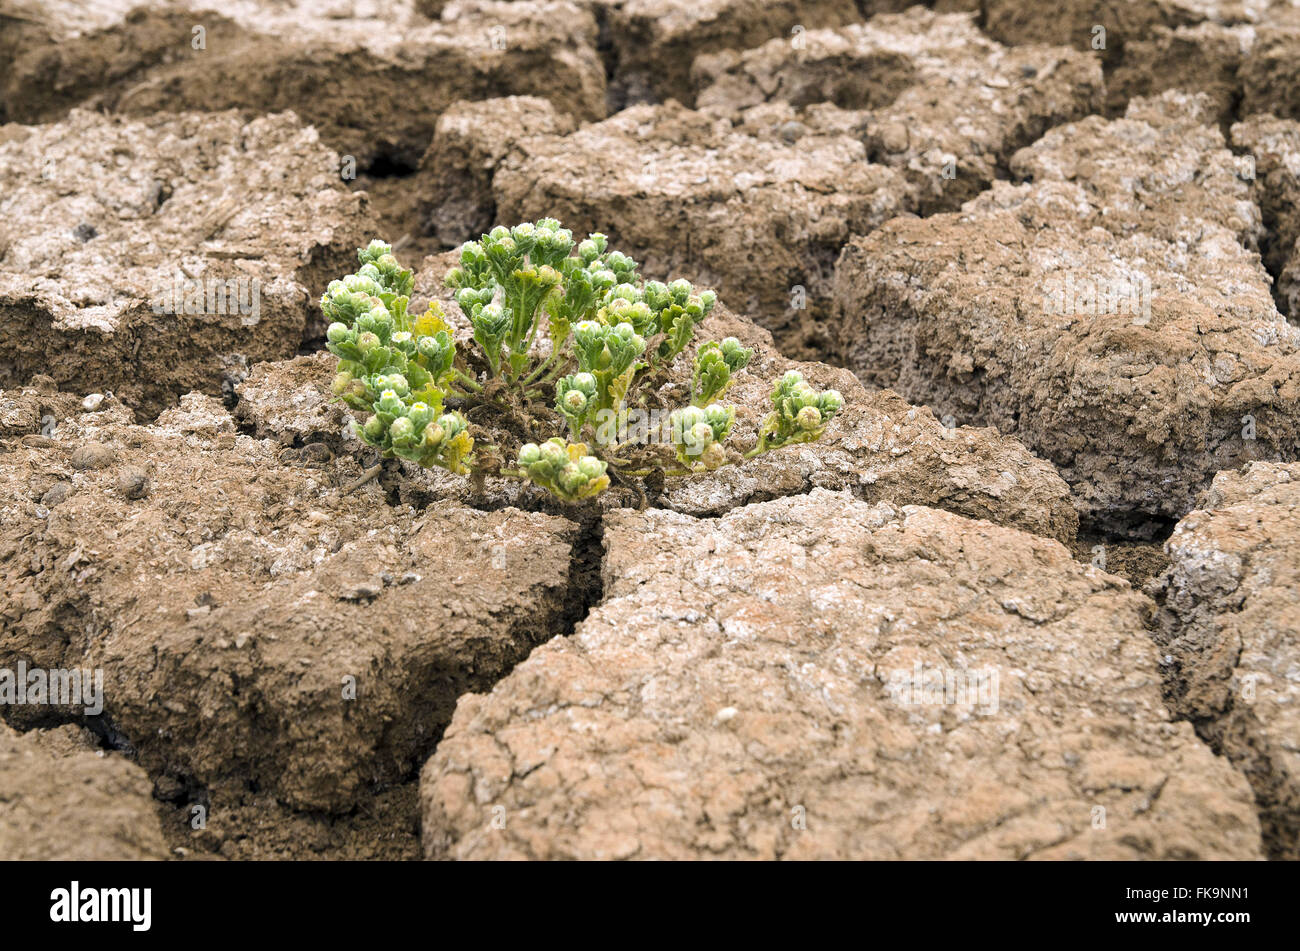 Vegetation sprouting in Puiu lagoon in the dry season - Catimbau National Park - Stock Image